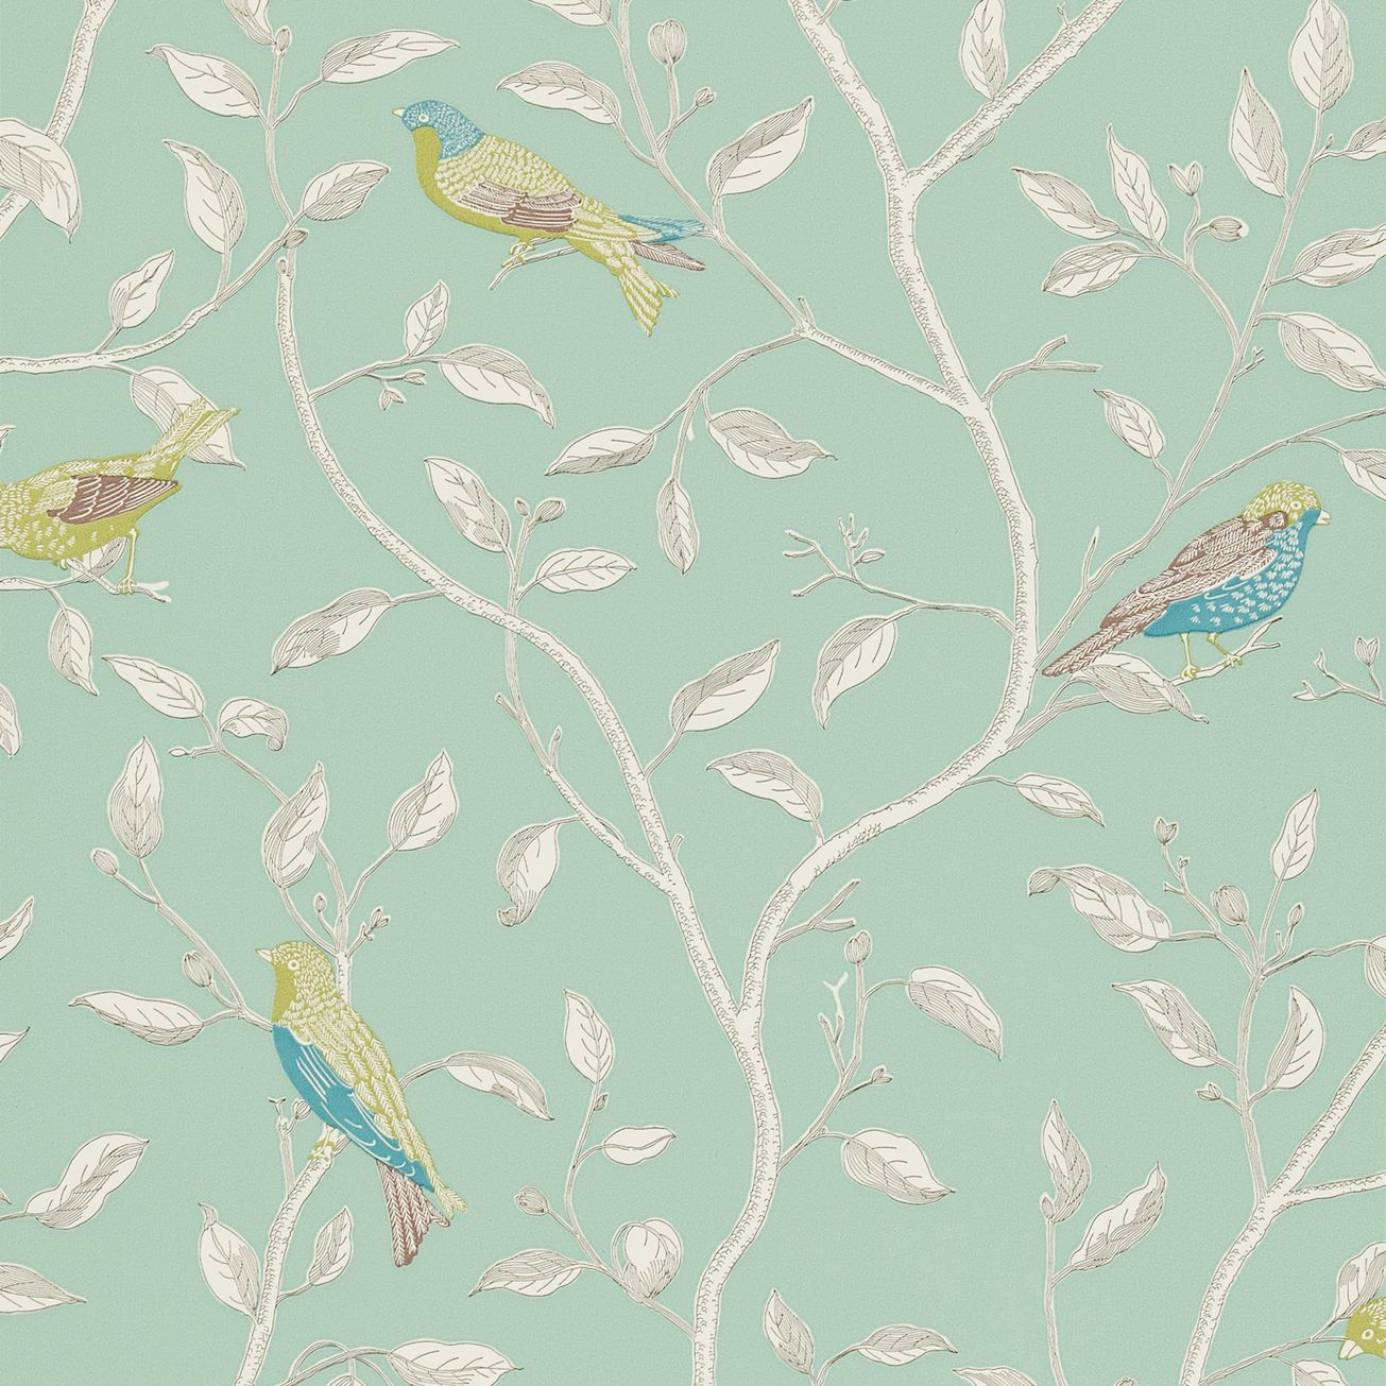 Finches Wallpaper Duckegg Dopwfi103 Sanderson